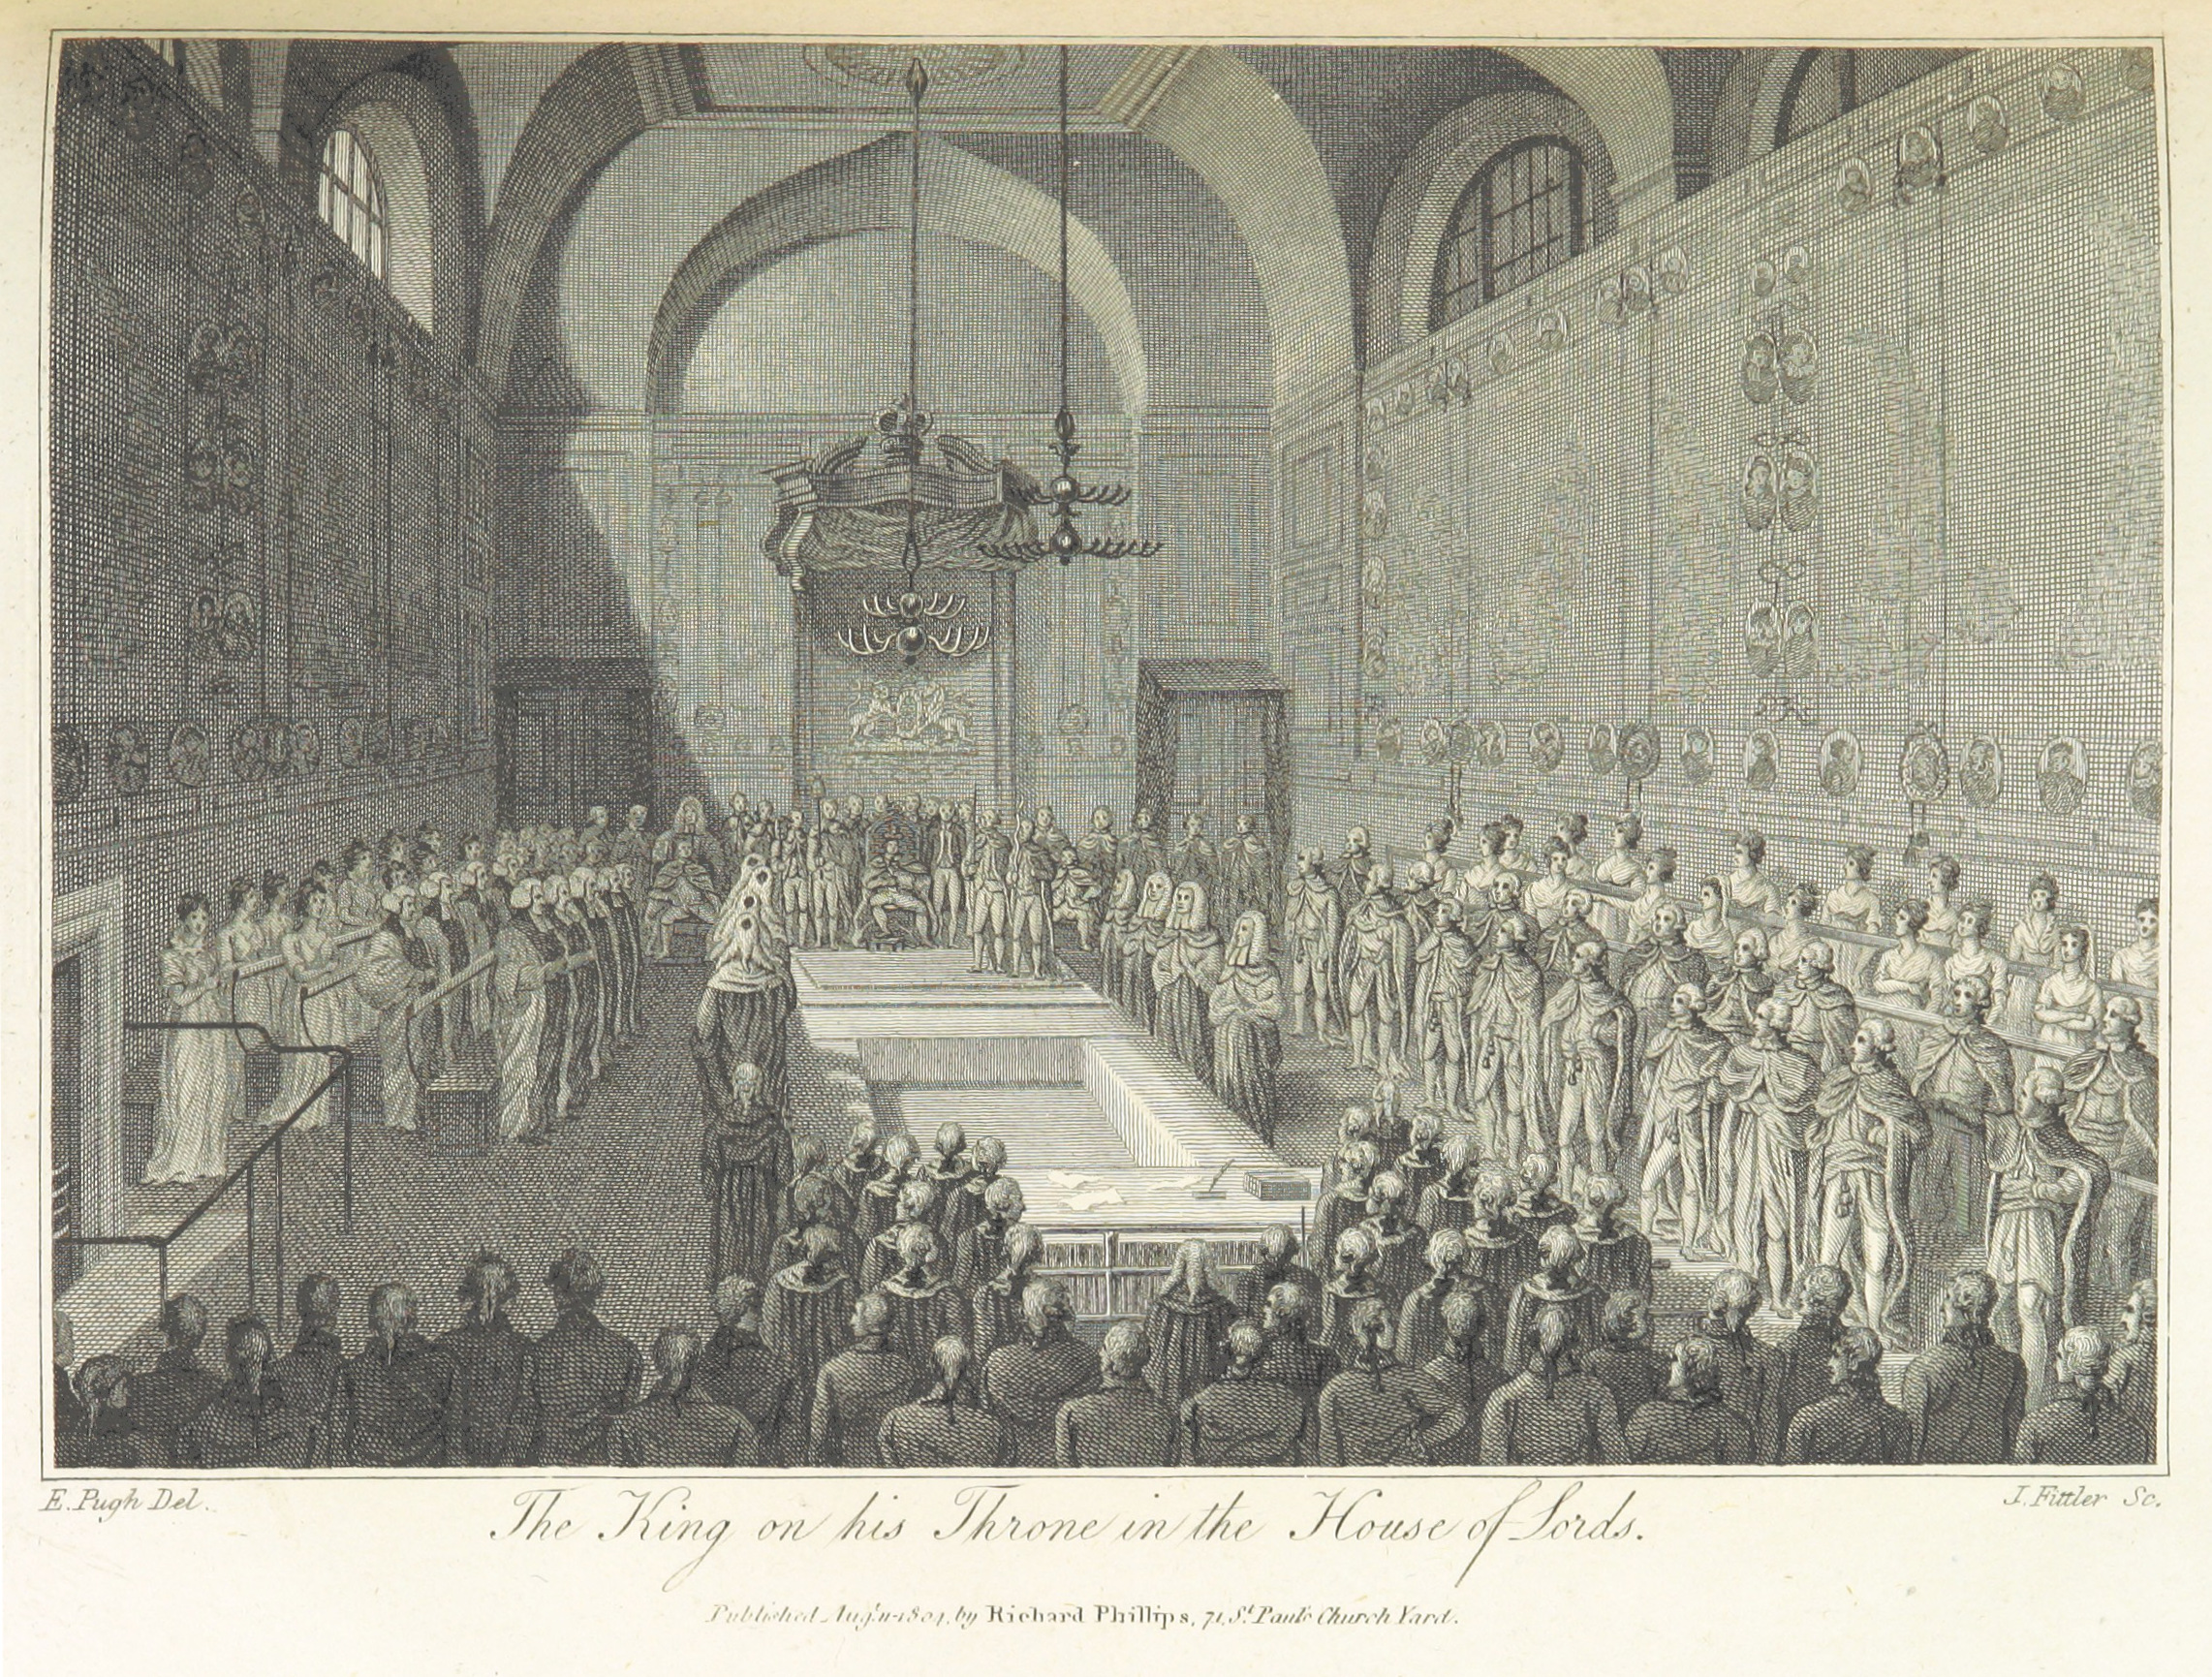 Phillips(1804)_p291_-_The_King_on_his_Throne_in_the_House_of_Lords